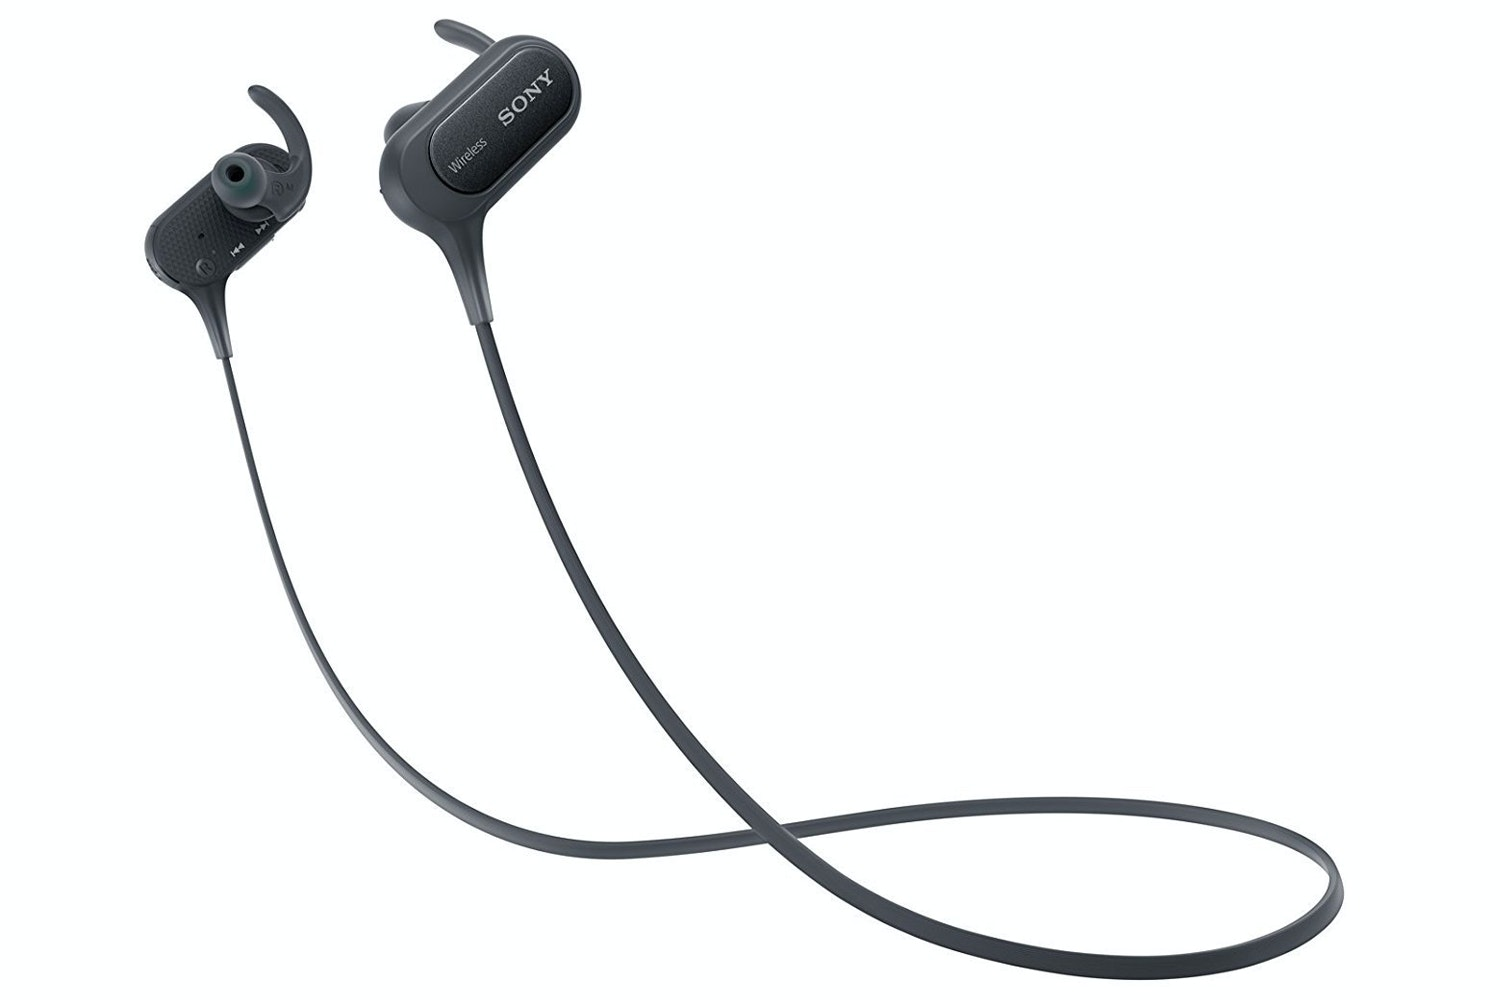 Sony In-Ear Headphones Black | MDRXB50BSB.CE7